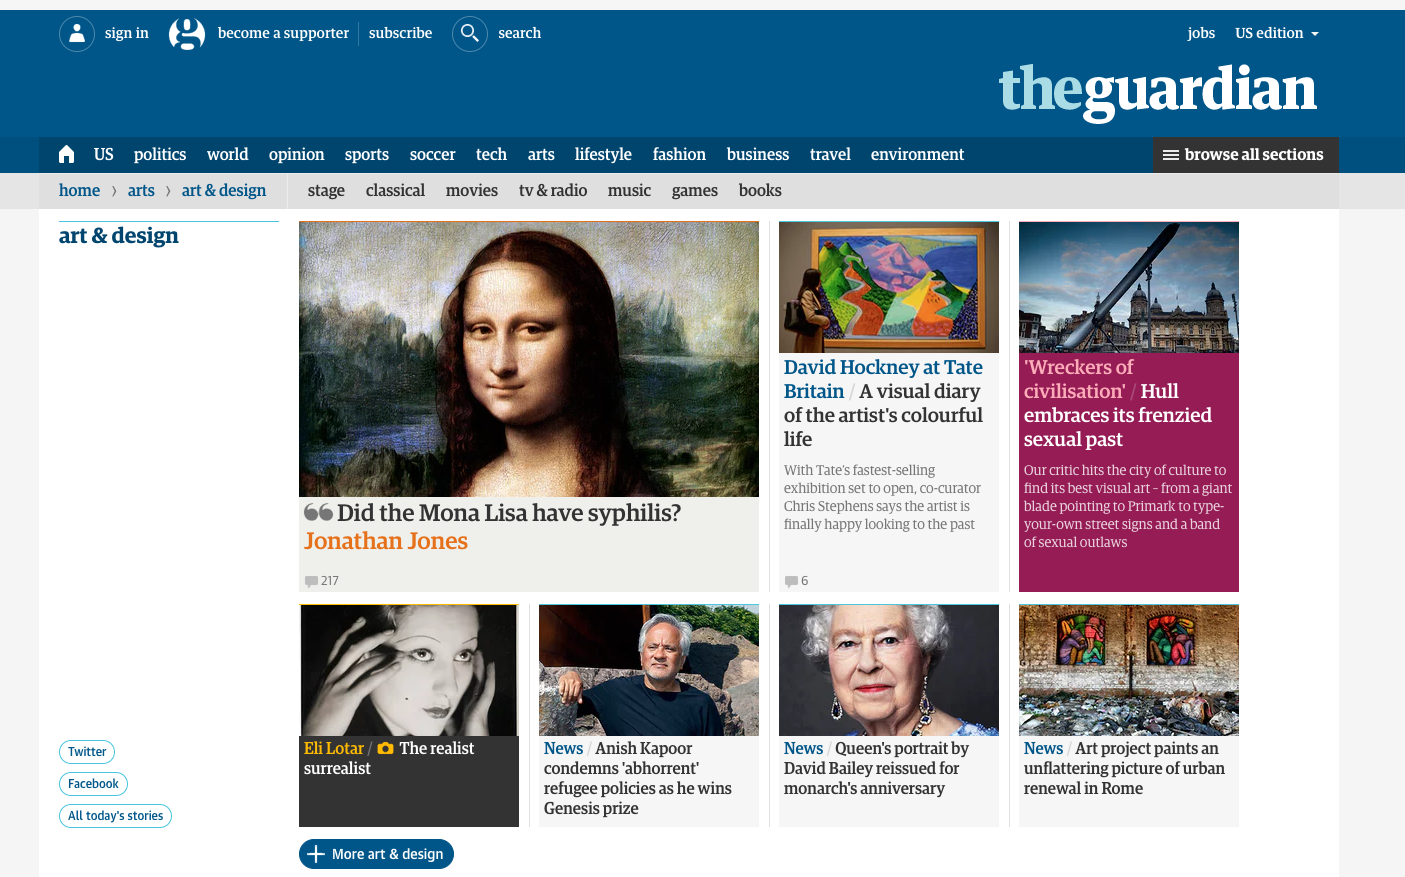 the guardian: art & design